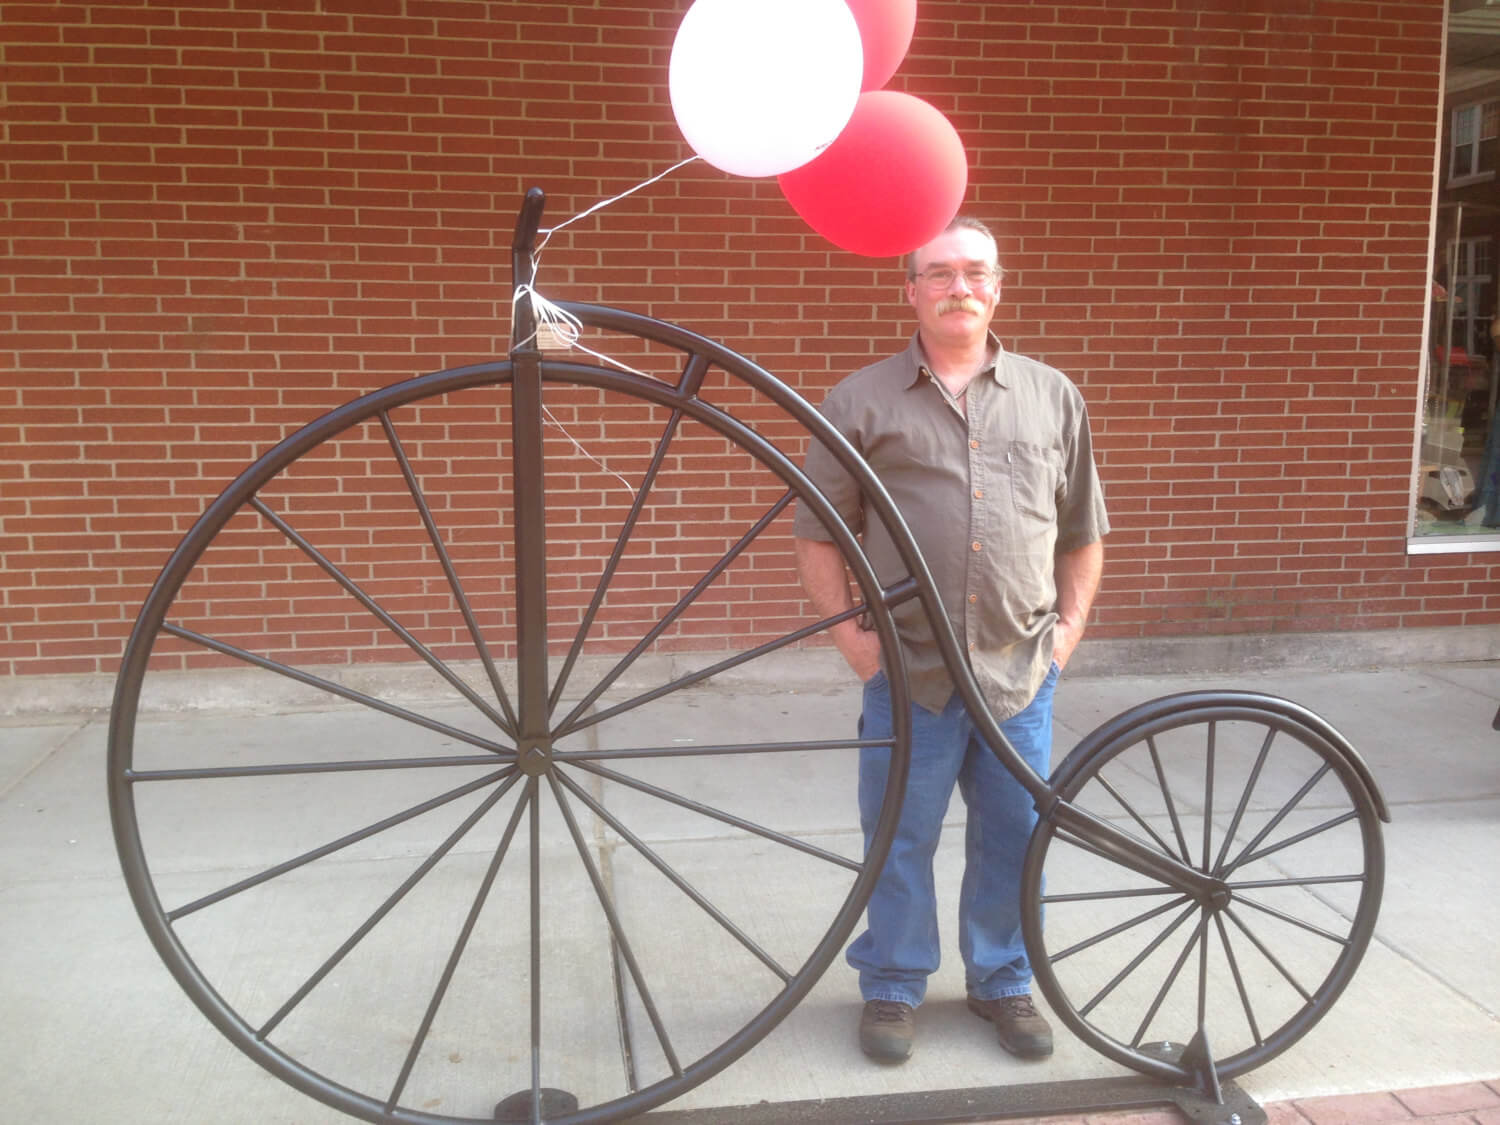 This classic vintage bike rack was made for the city of PLatteville, Wisconsin, and similar versions can be bought through the metal artist on etsy.com.